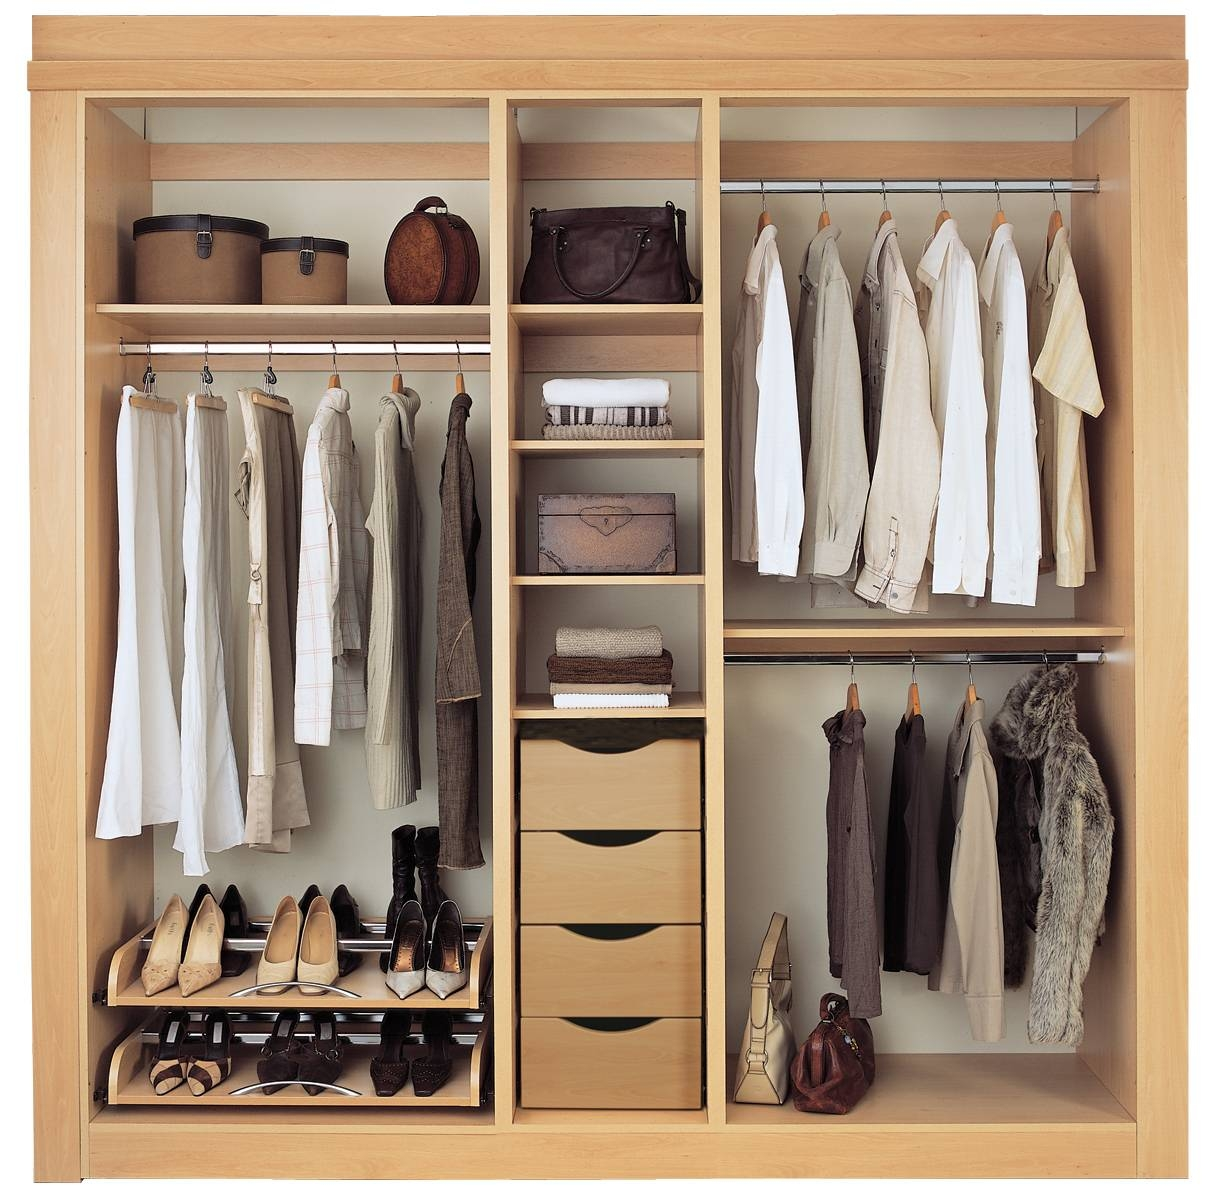 Wardrobes : Stunning Wardrobes Interiors With Organized Storage regarding Drawers And Shelves For Wardrobes (Image 26 of 30)